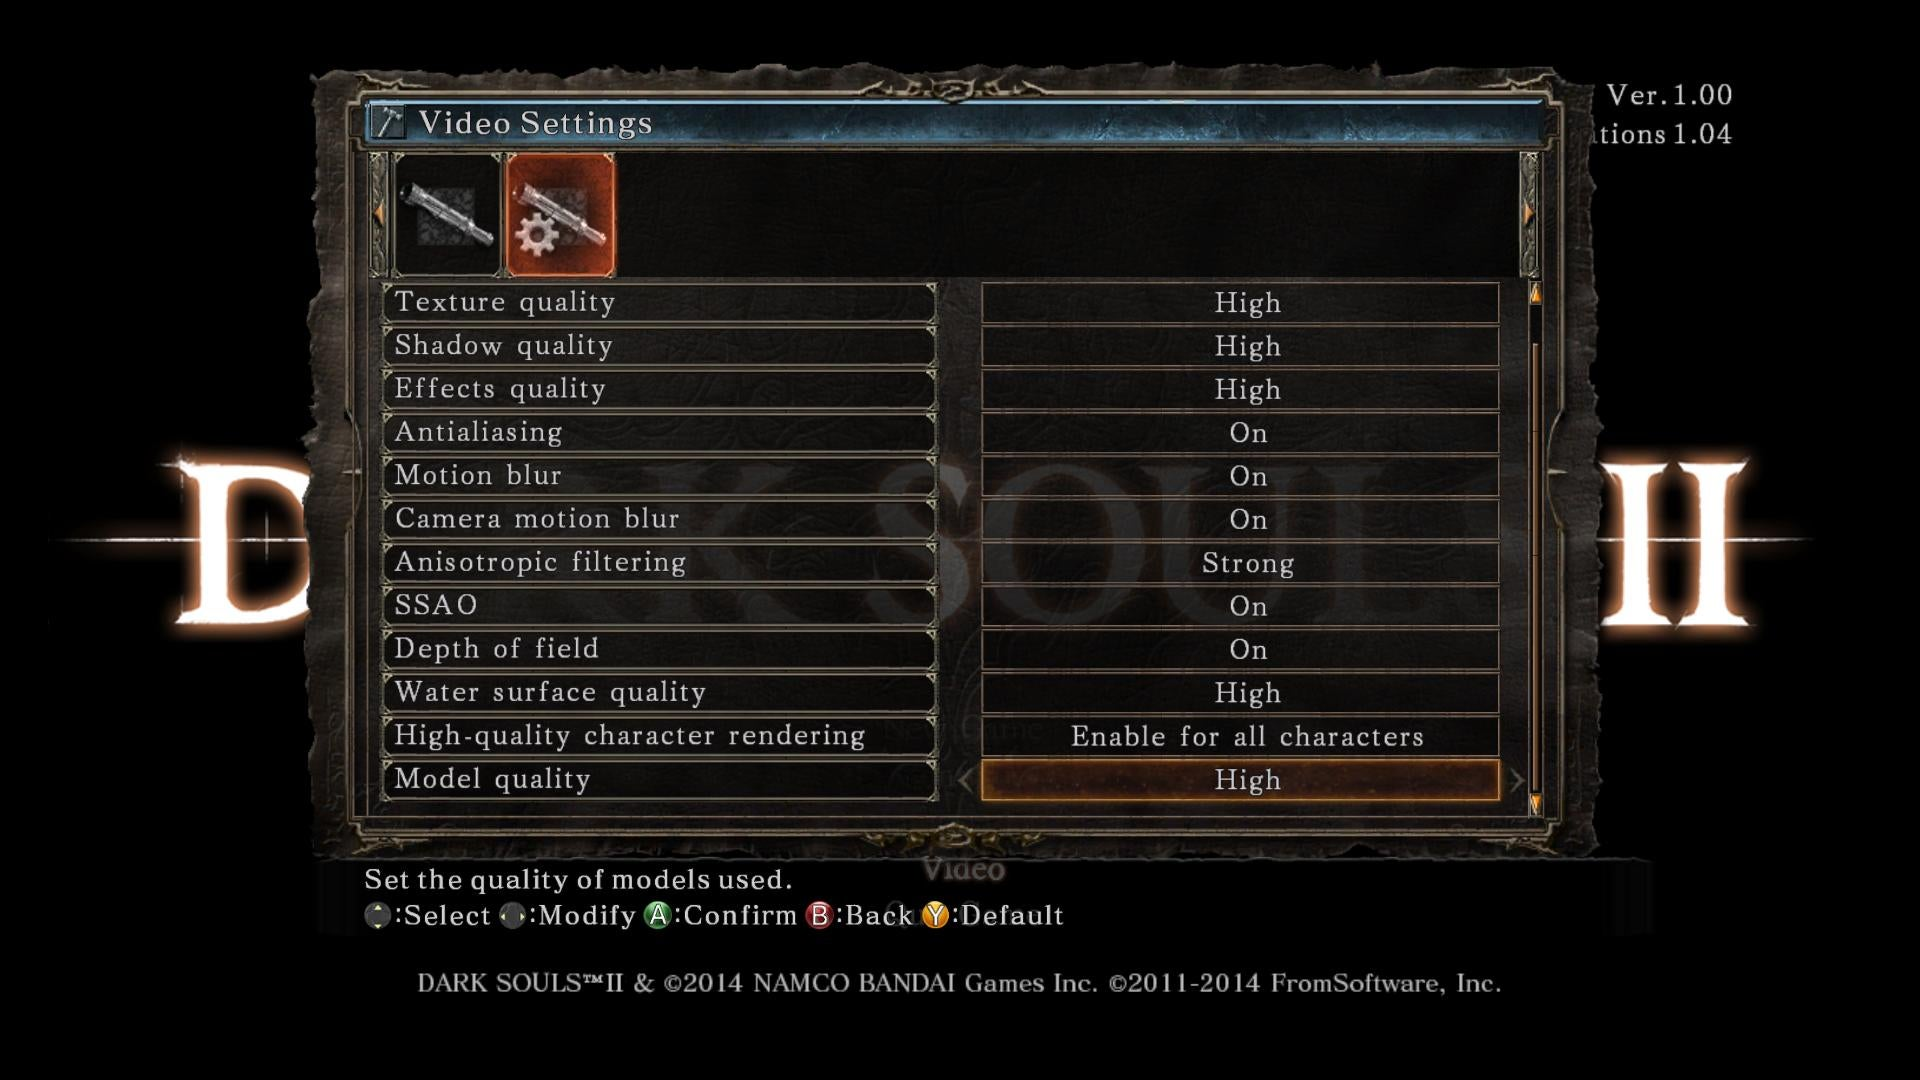 Here Are All The Settings For Dark Souls II On PC